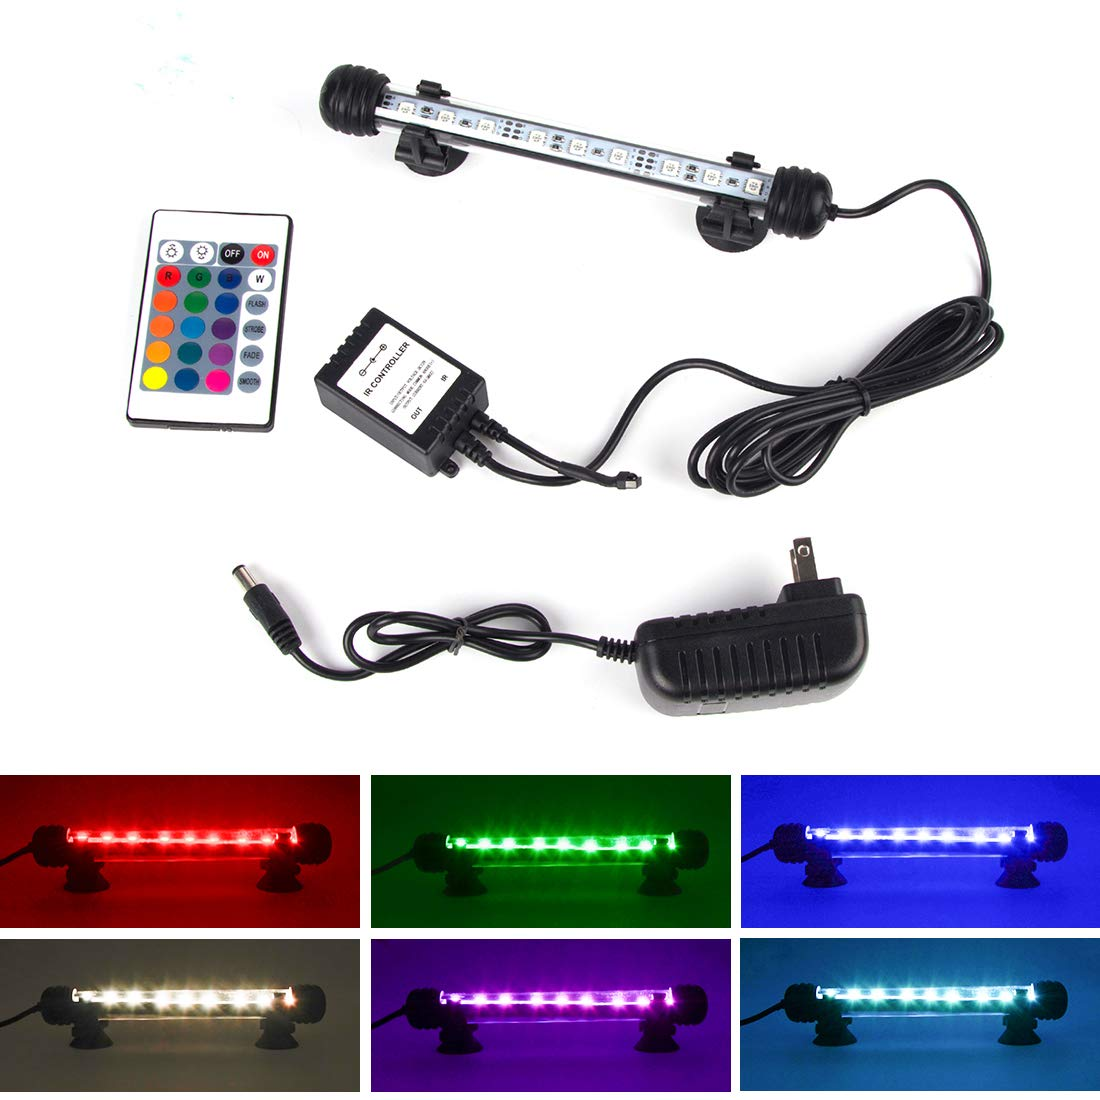 LED Aquarium Light, Smiful Fish Tank 16 Color 4 Modes RGB Lights Submersible Underwater Crystal Glass Lights with Wireless Remote Control, 7.5'' - Multi Color (Colorful)